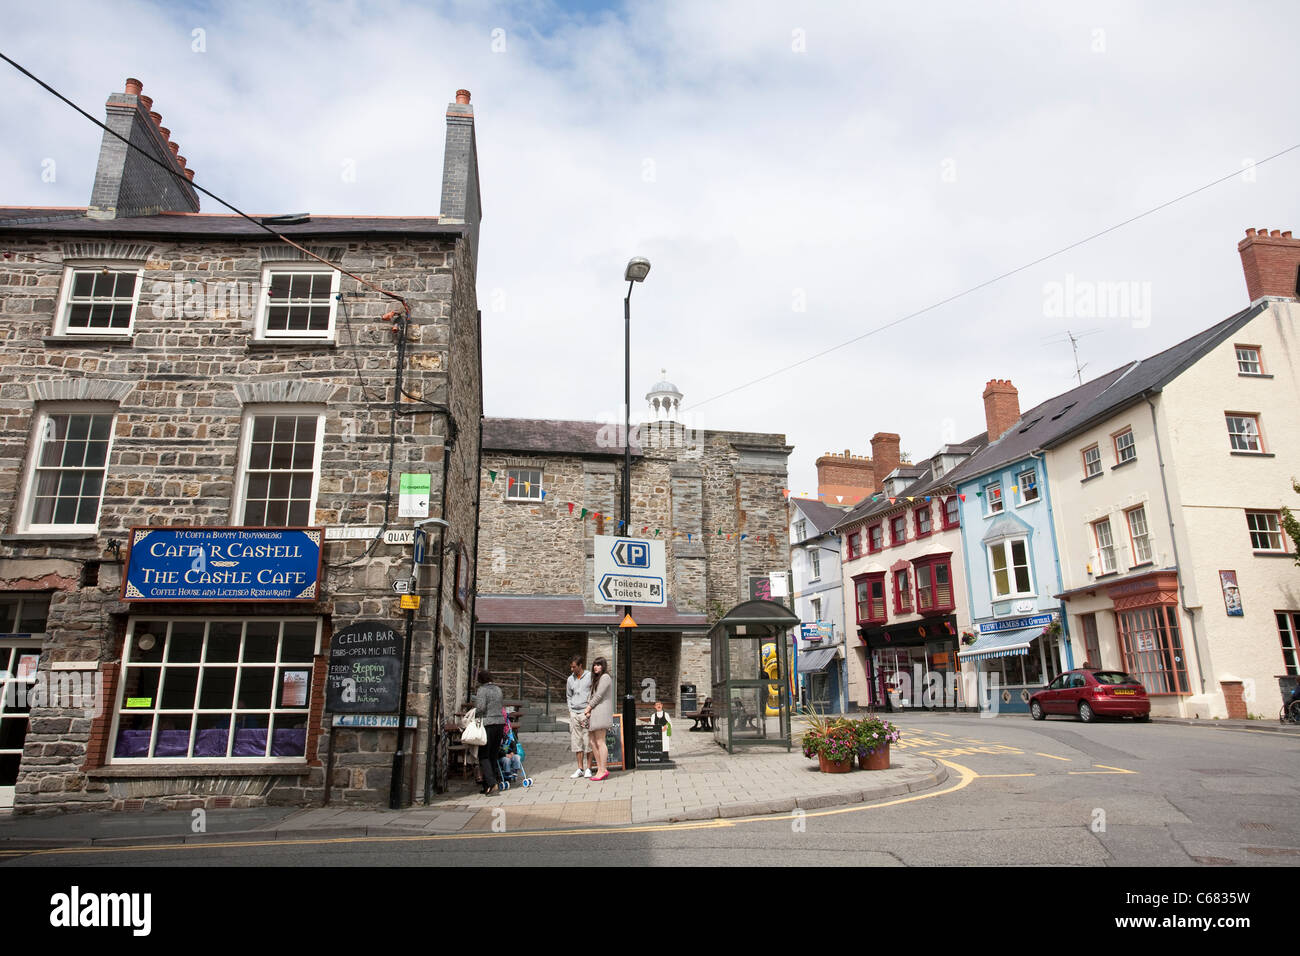 Cardigan High Street, West Wales. United Kingdom. Photo:Jeff Gilbert - Stock Image